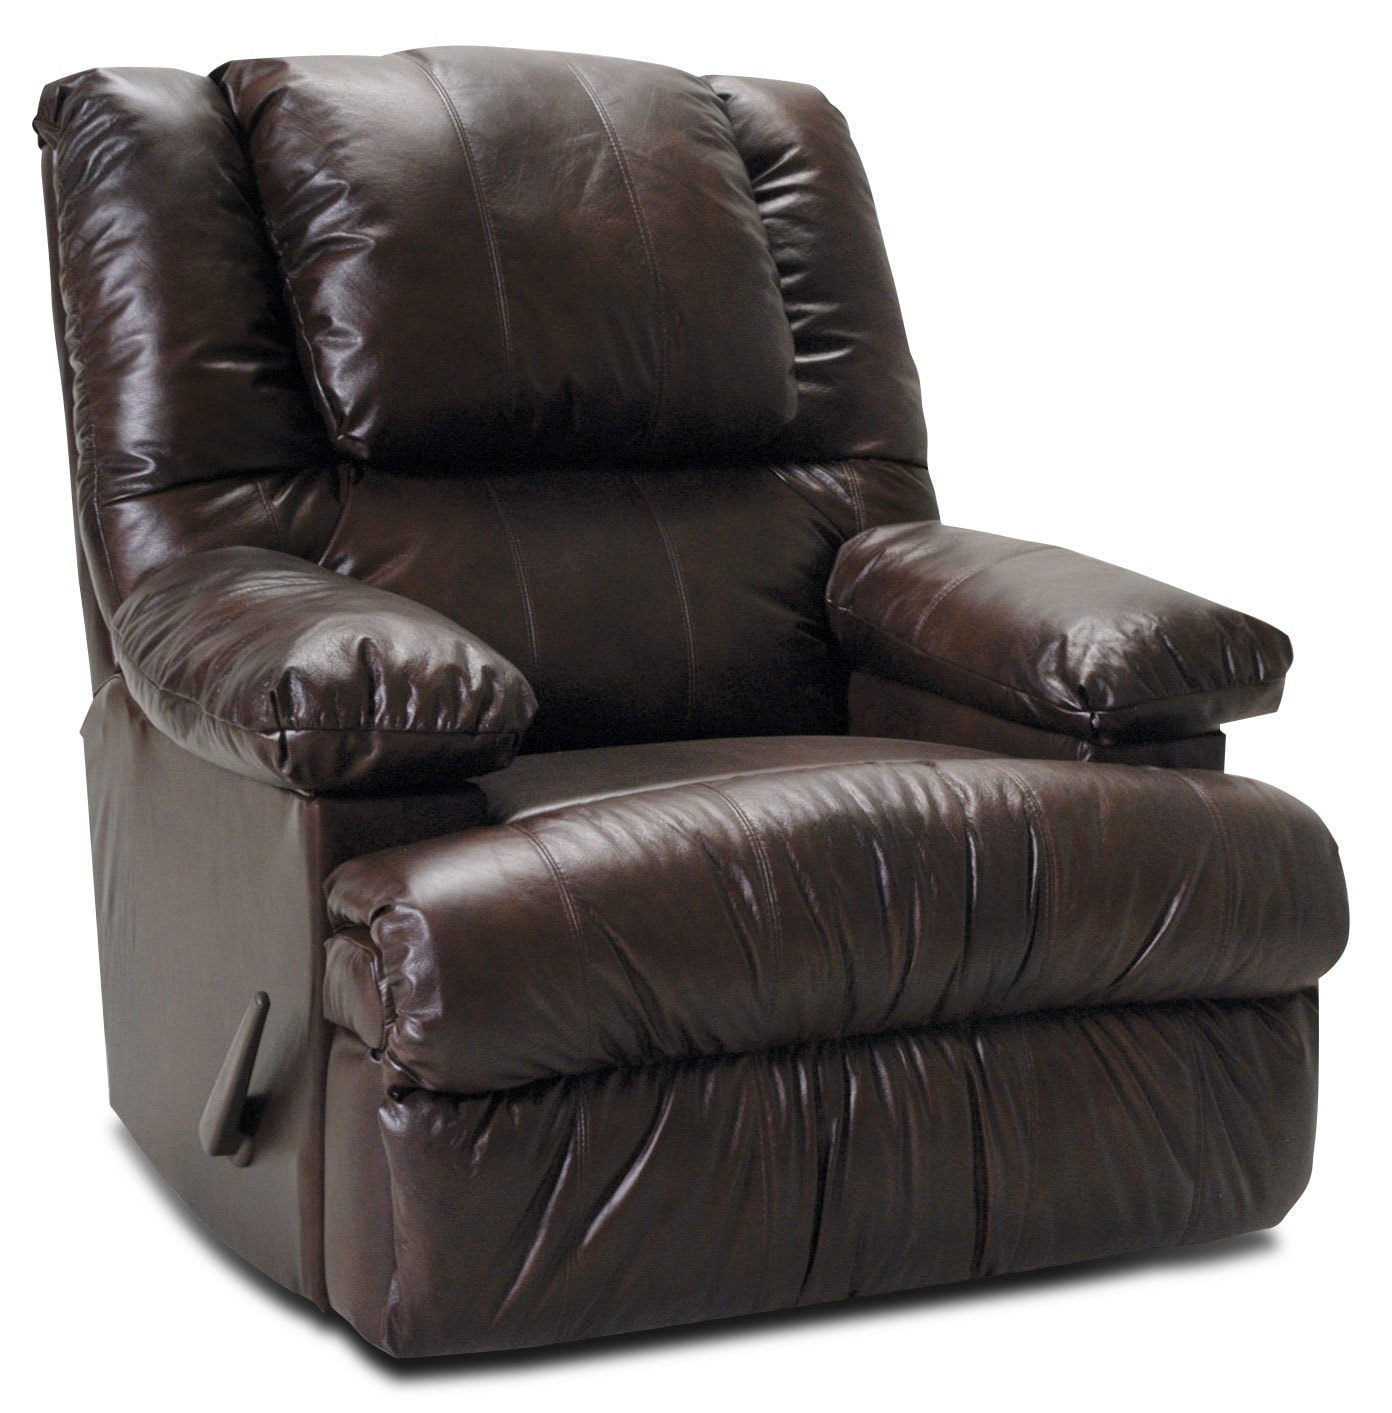 Living Room Furniture - Designed2B Recliner 5598 Genuine Leather Rocker with Storage Arms - Chocolate